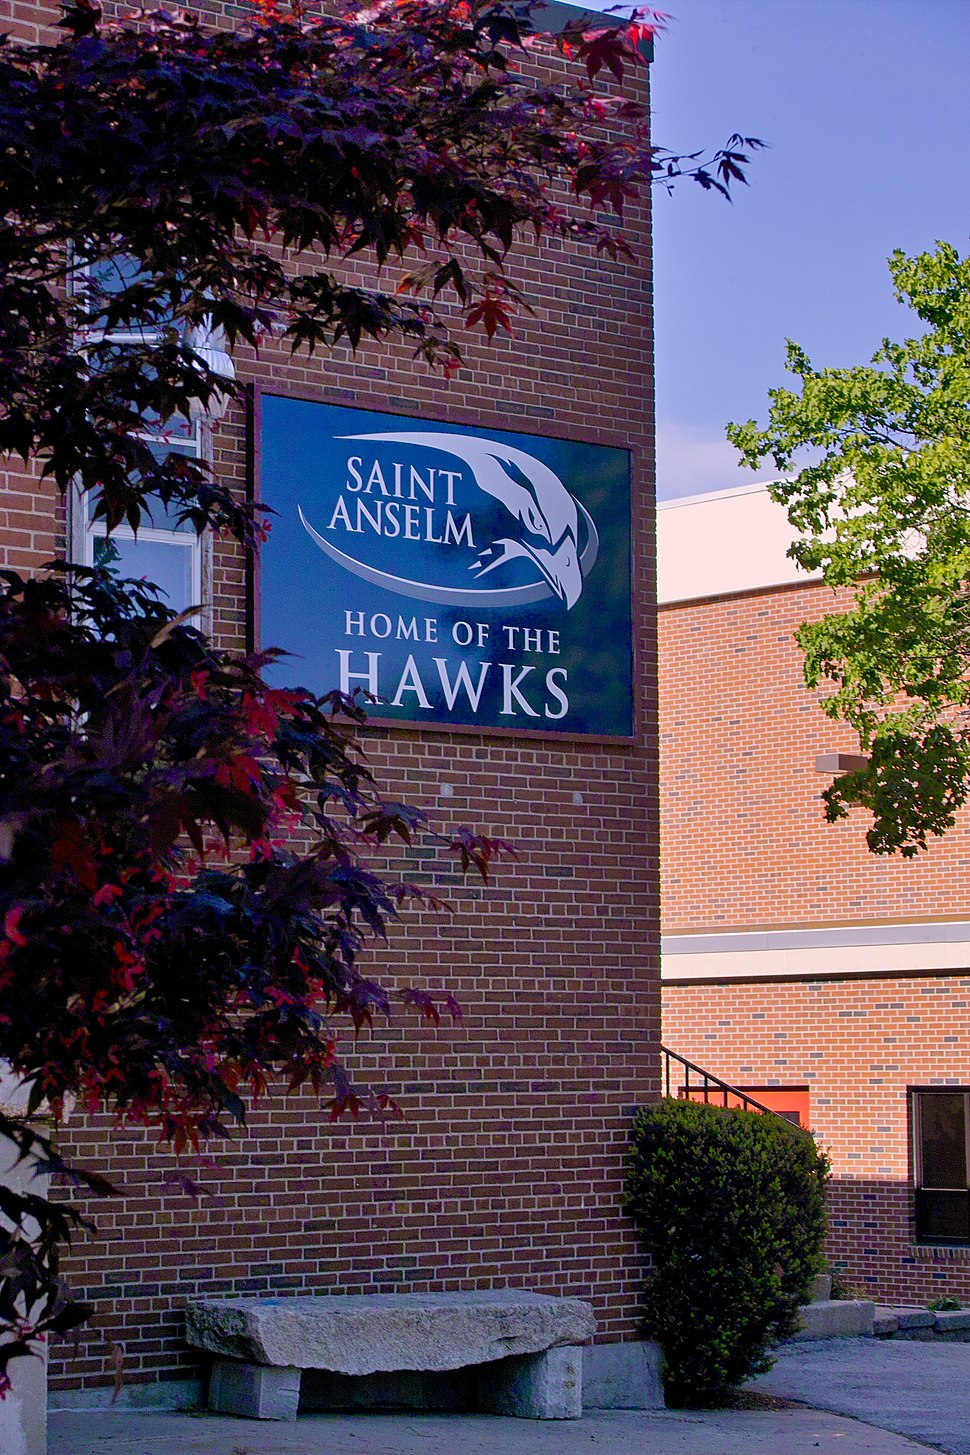 Home of the Hawks gym